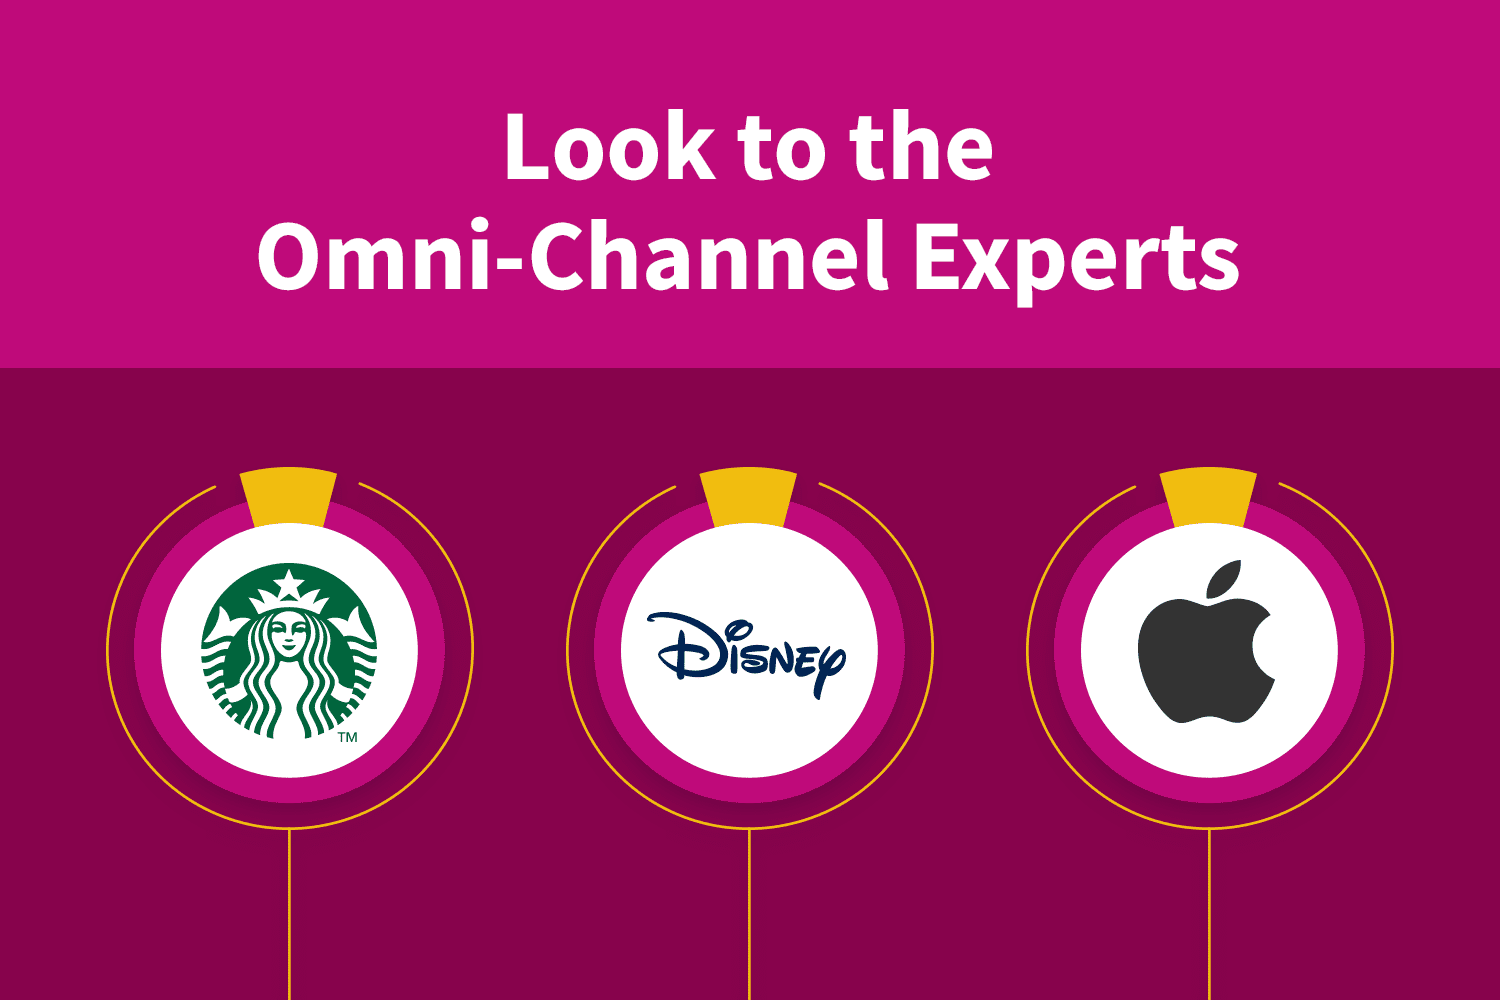 Look to the Omni-Channel Experts